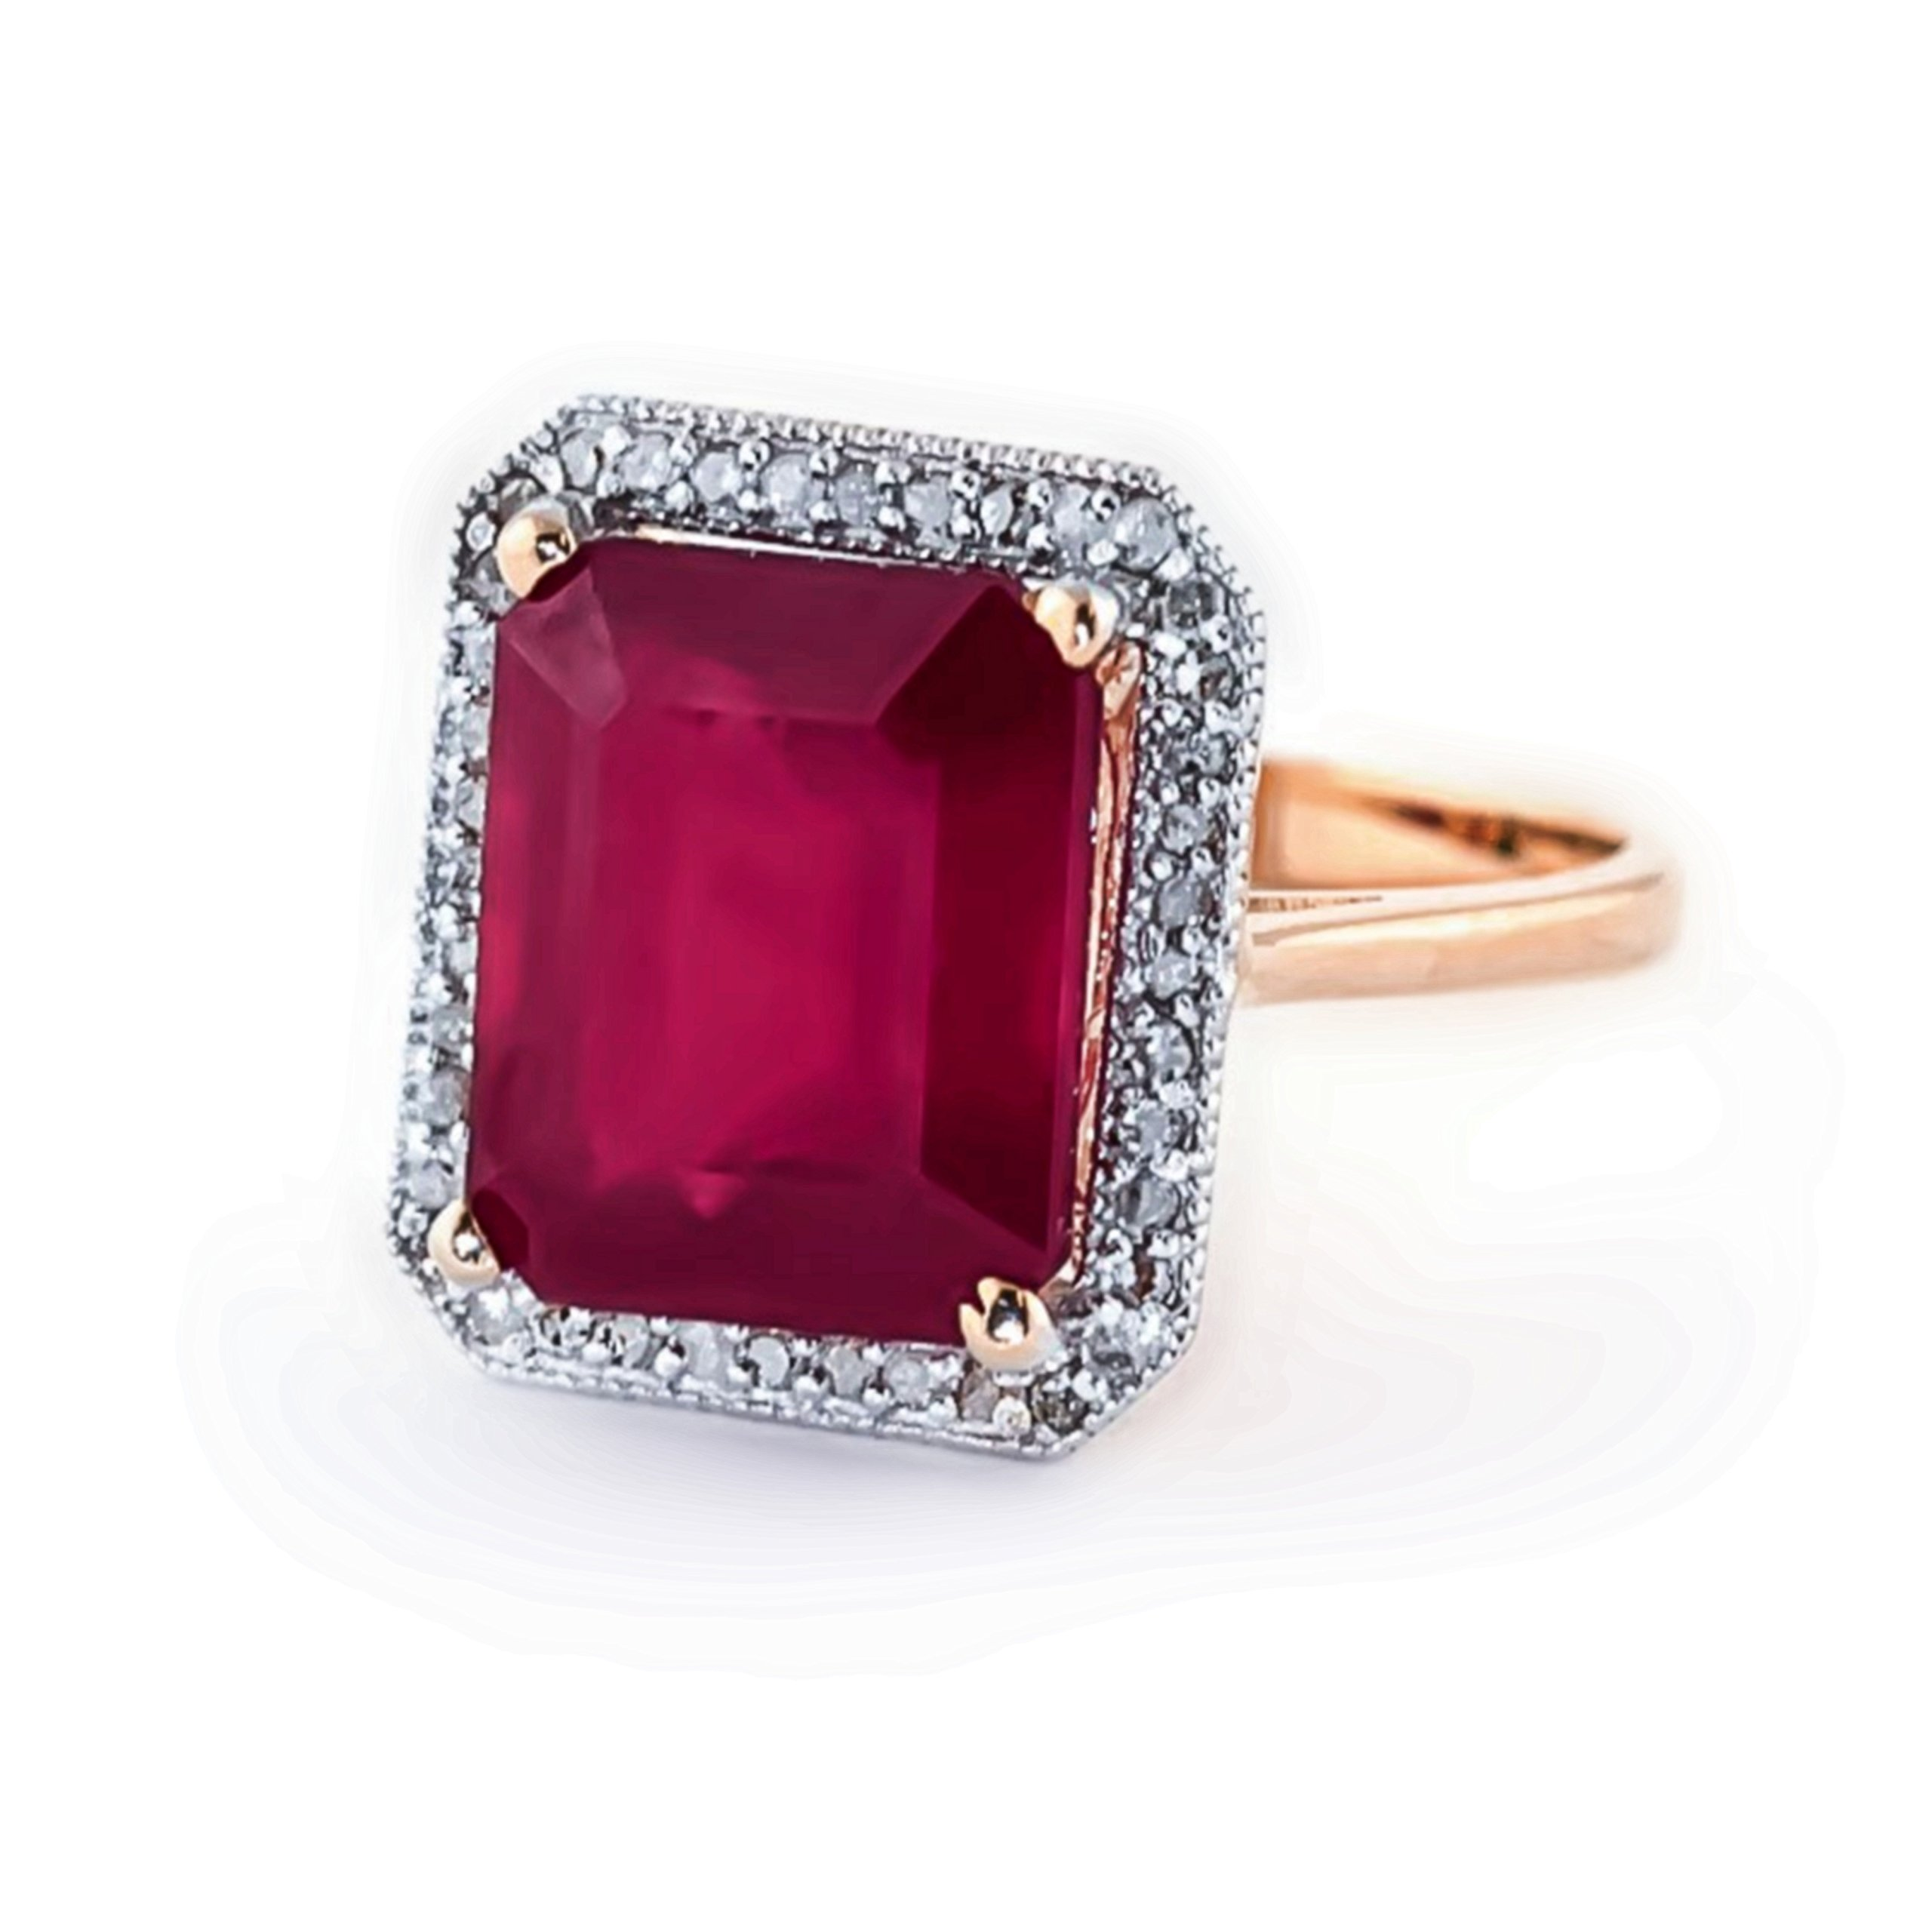 7.45 Carat 14K Solid White Rose Yellow Gold Emerald Cut Ruby Halo Design with Natural Diamond Ring 4894 (Rose-Gold, 9.5)